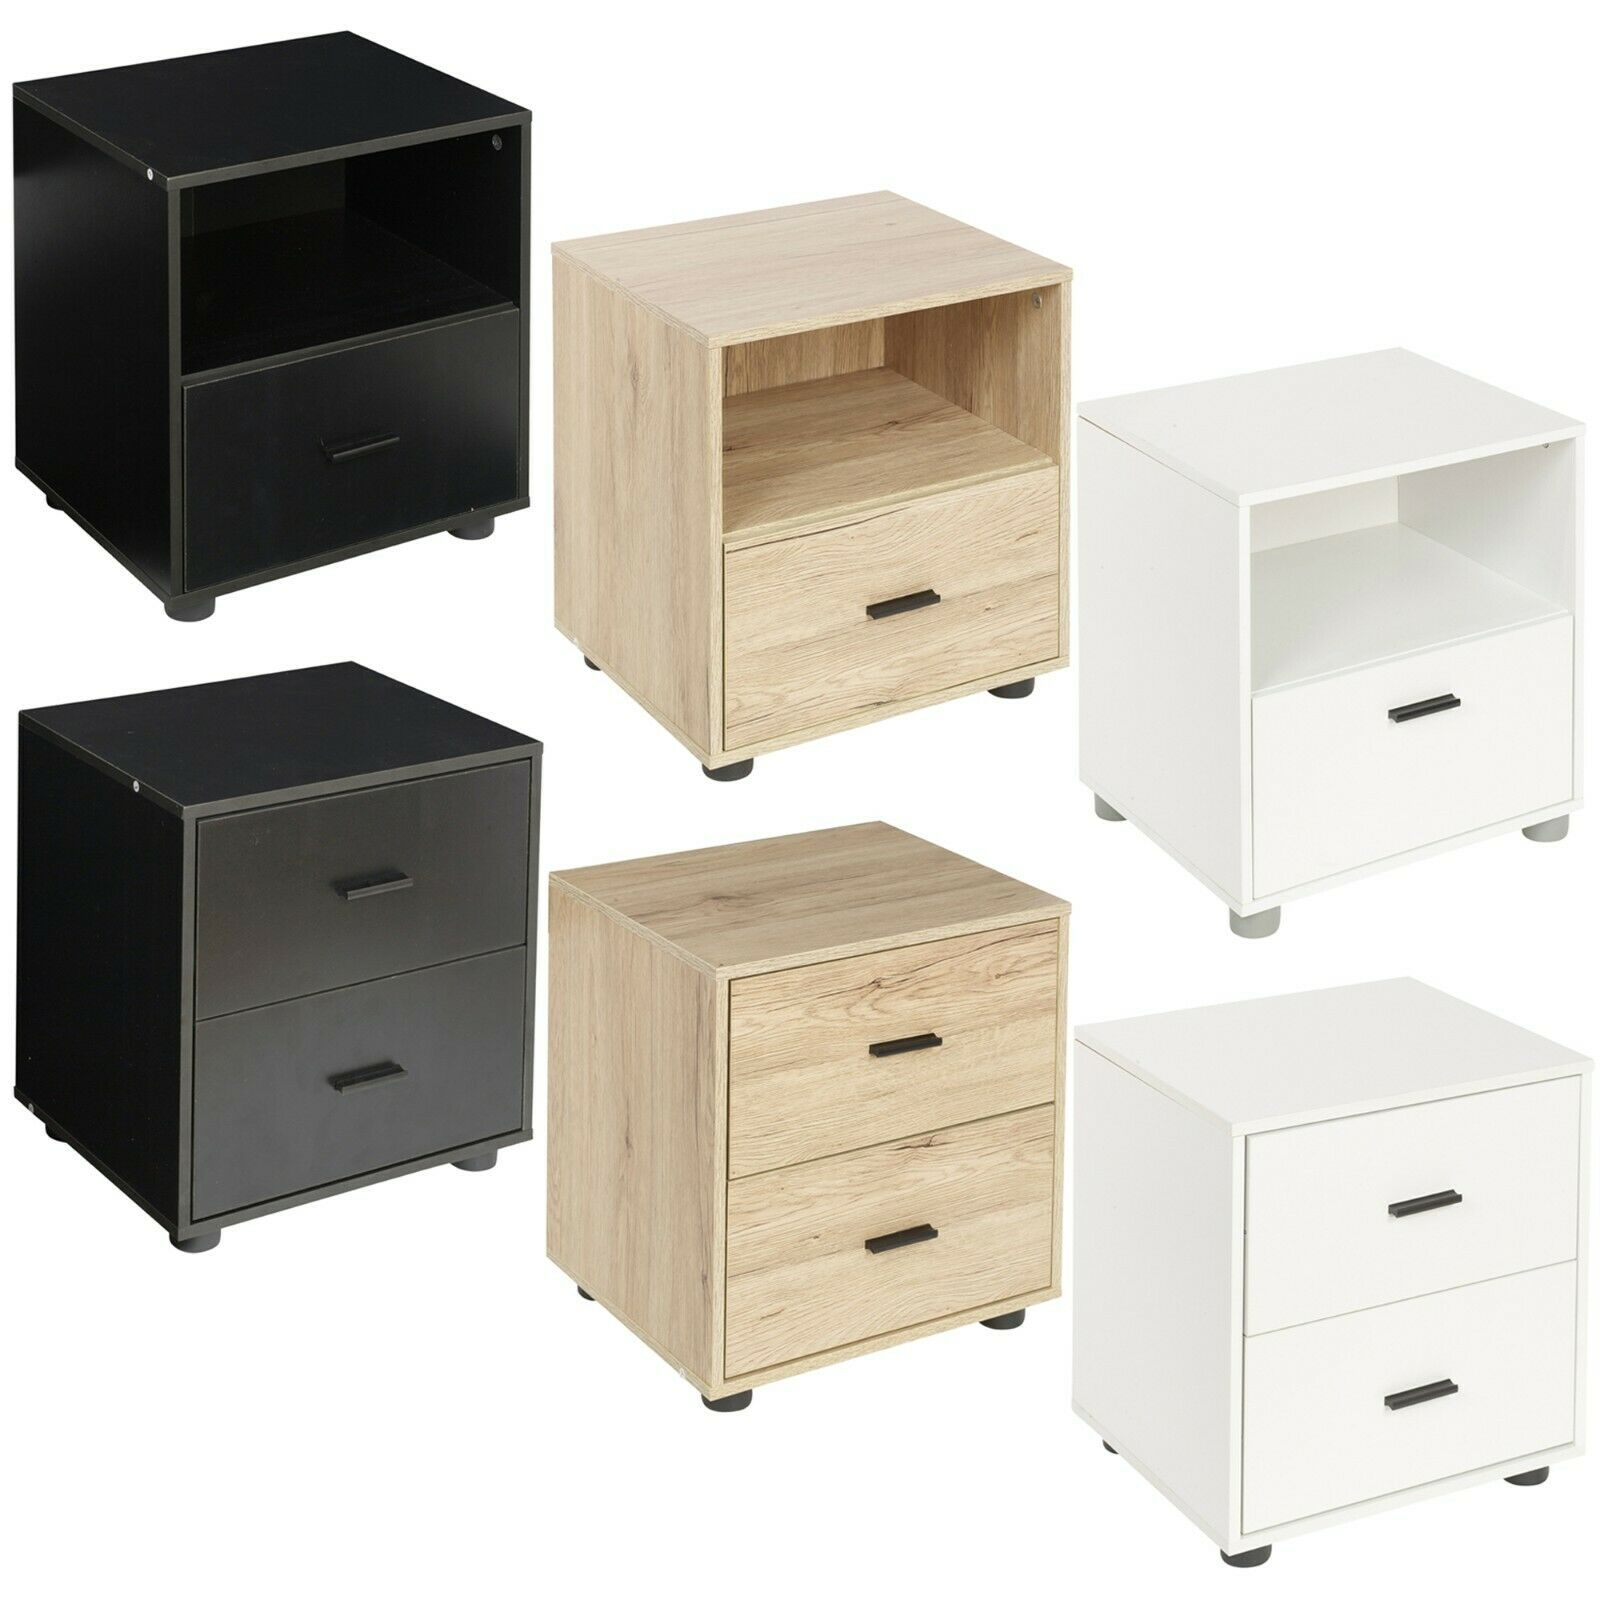 Kensington Oak Black Bedroom Furniture 2 Drawer Wall Fixed Bedside Unit Table Lh For Sale Online Ebay,United Airlines Checked Baggage Size Limit